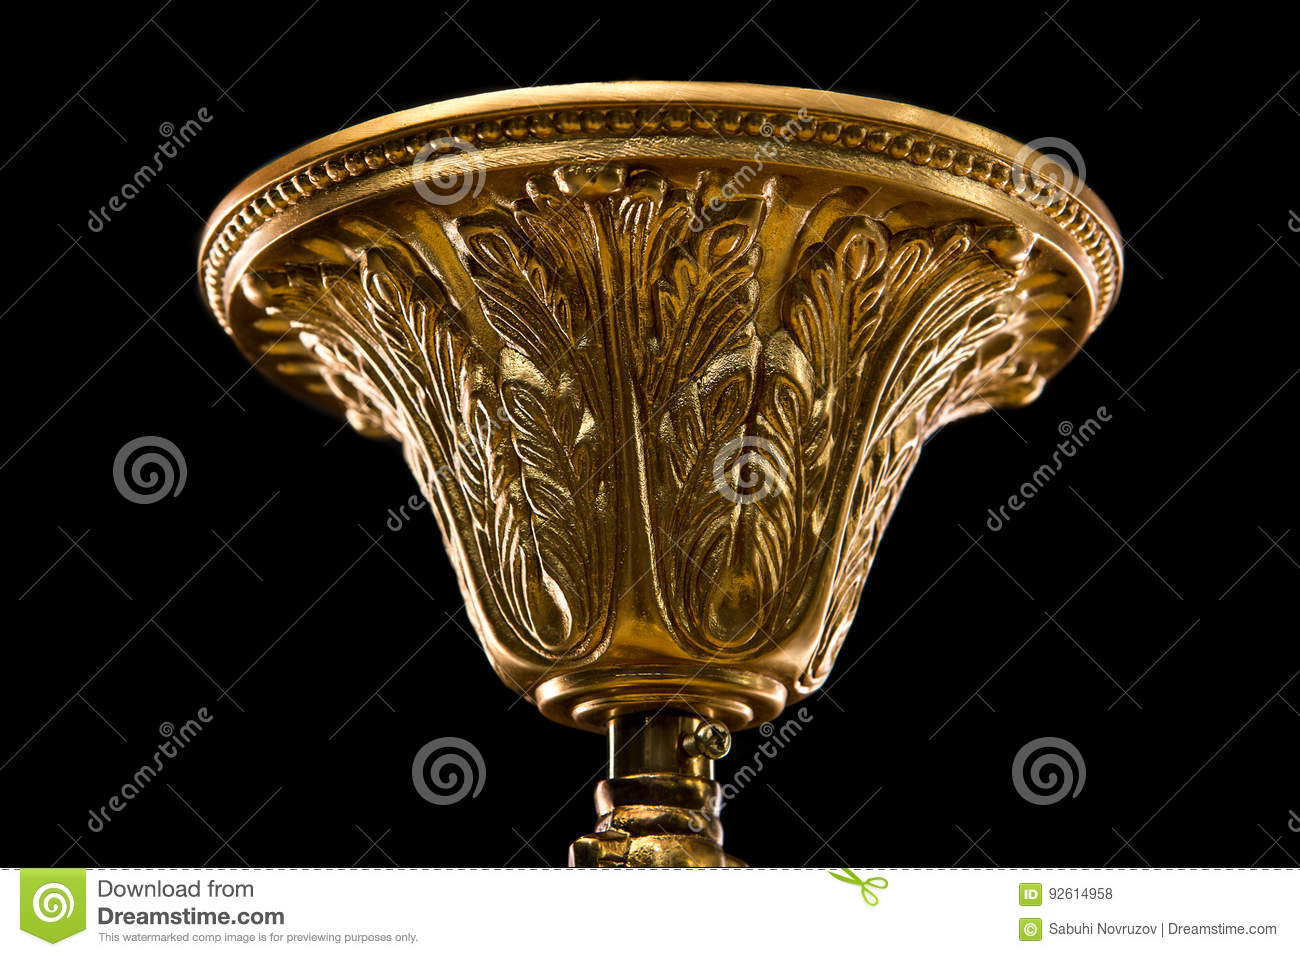 Top cap of chandelier contemporary gold chandelier isolated on royalty free stock photo arubaitofo Gallery